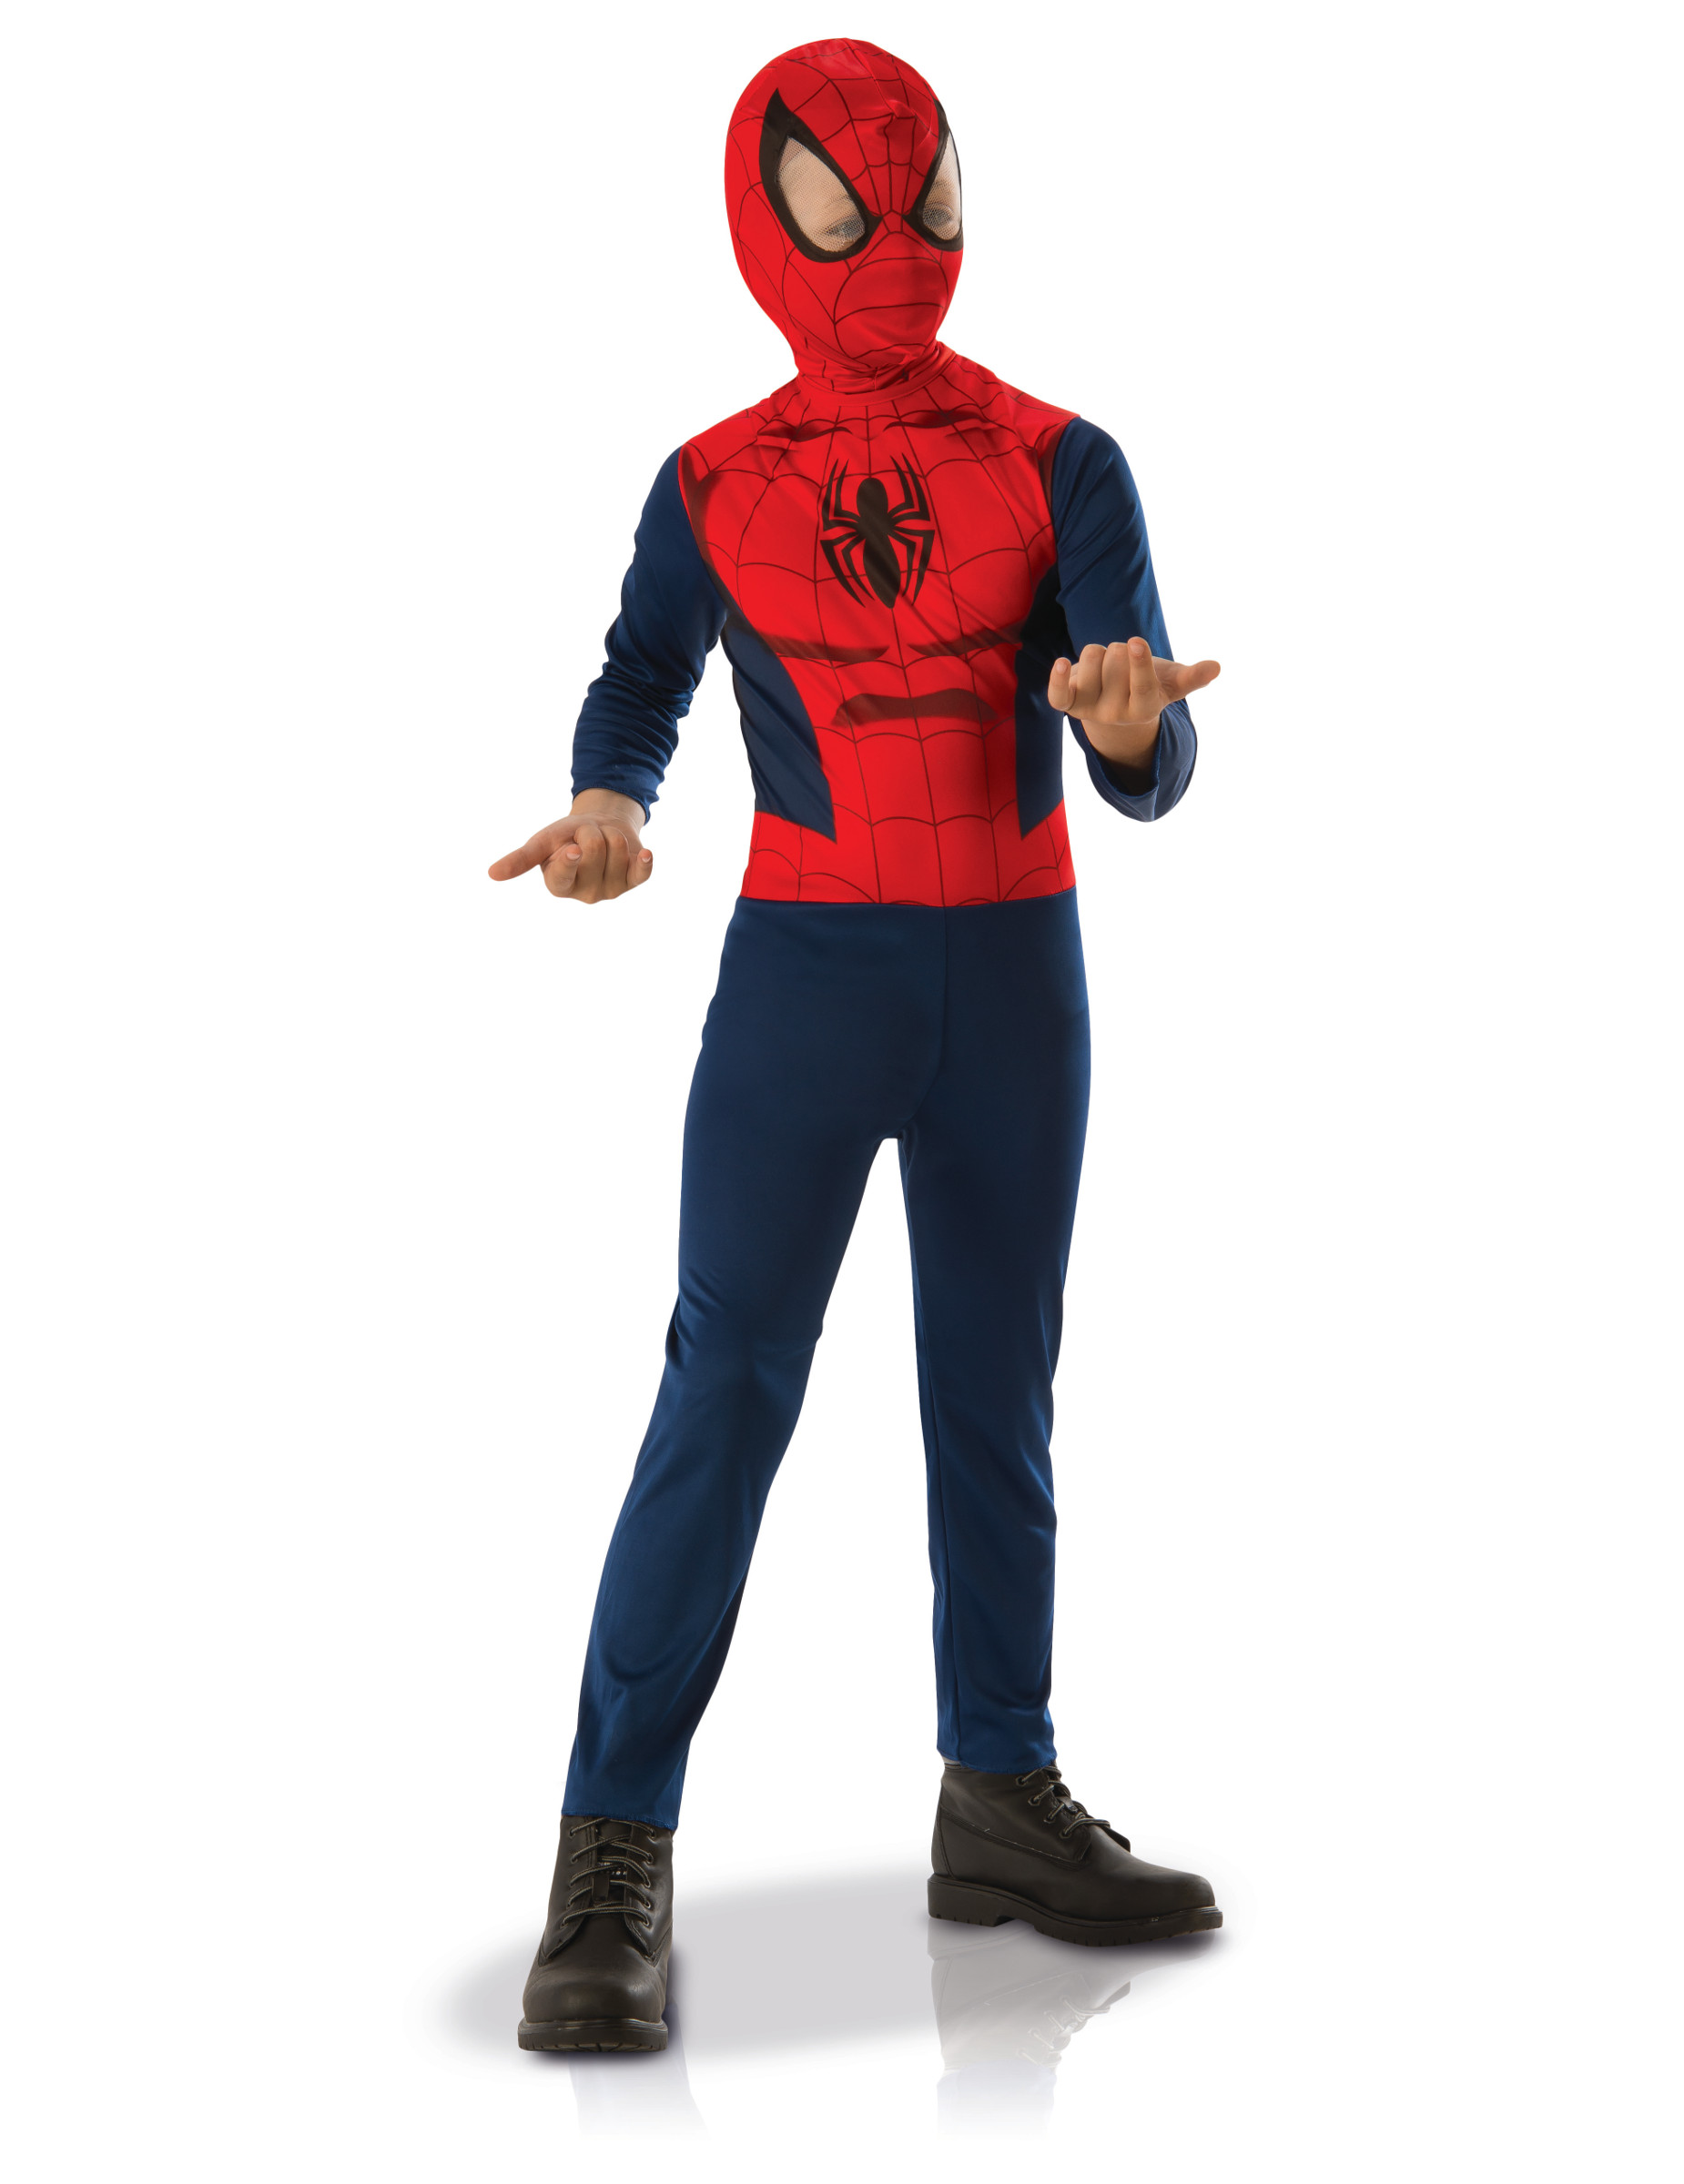 spiderman lizenzkost m f r kinder rot blau kost me f r kinder und g nstige faschingskost me. Black Bedroom Furniture Sets. Home Design Ideas